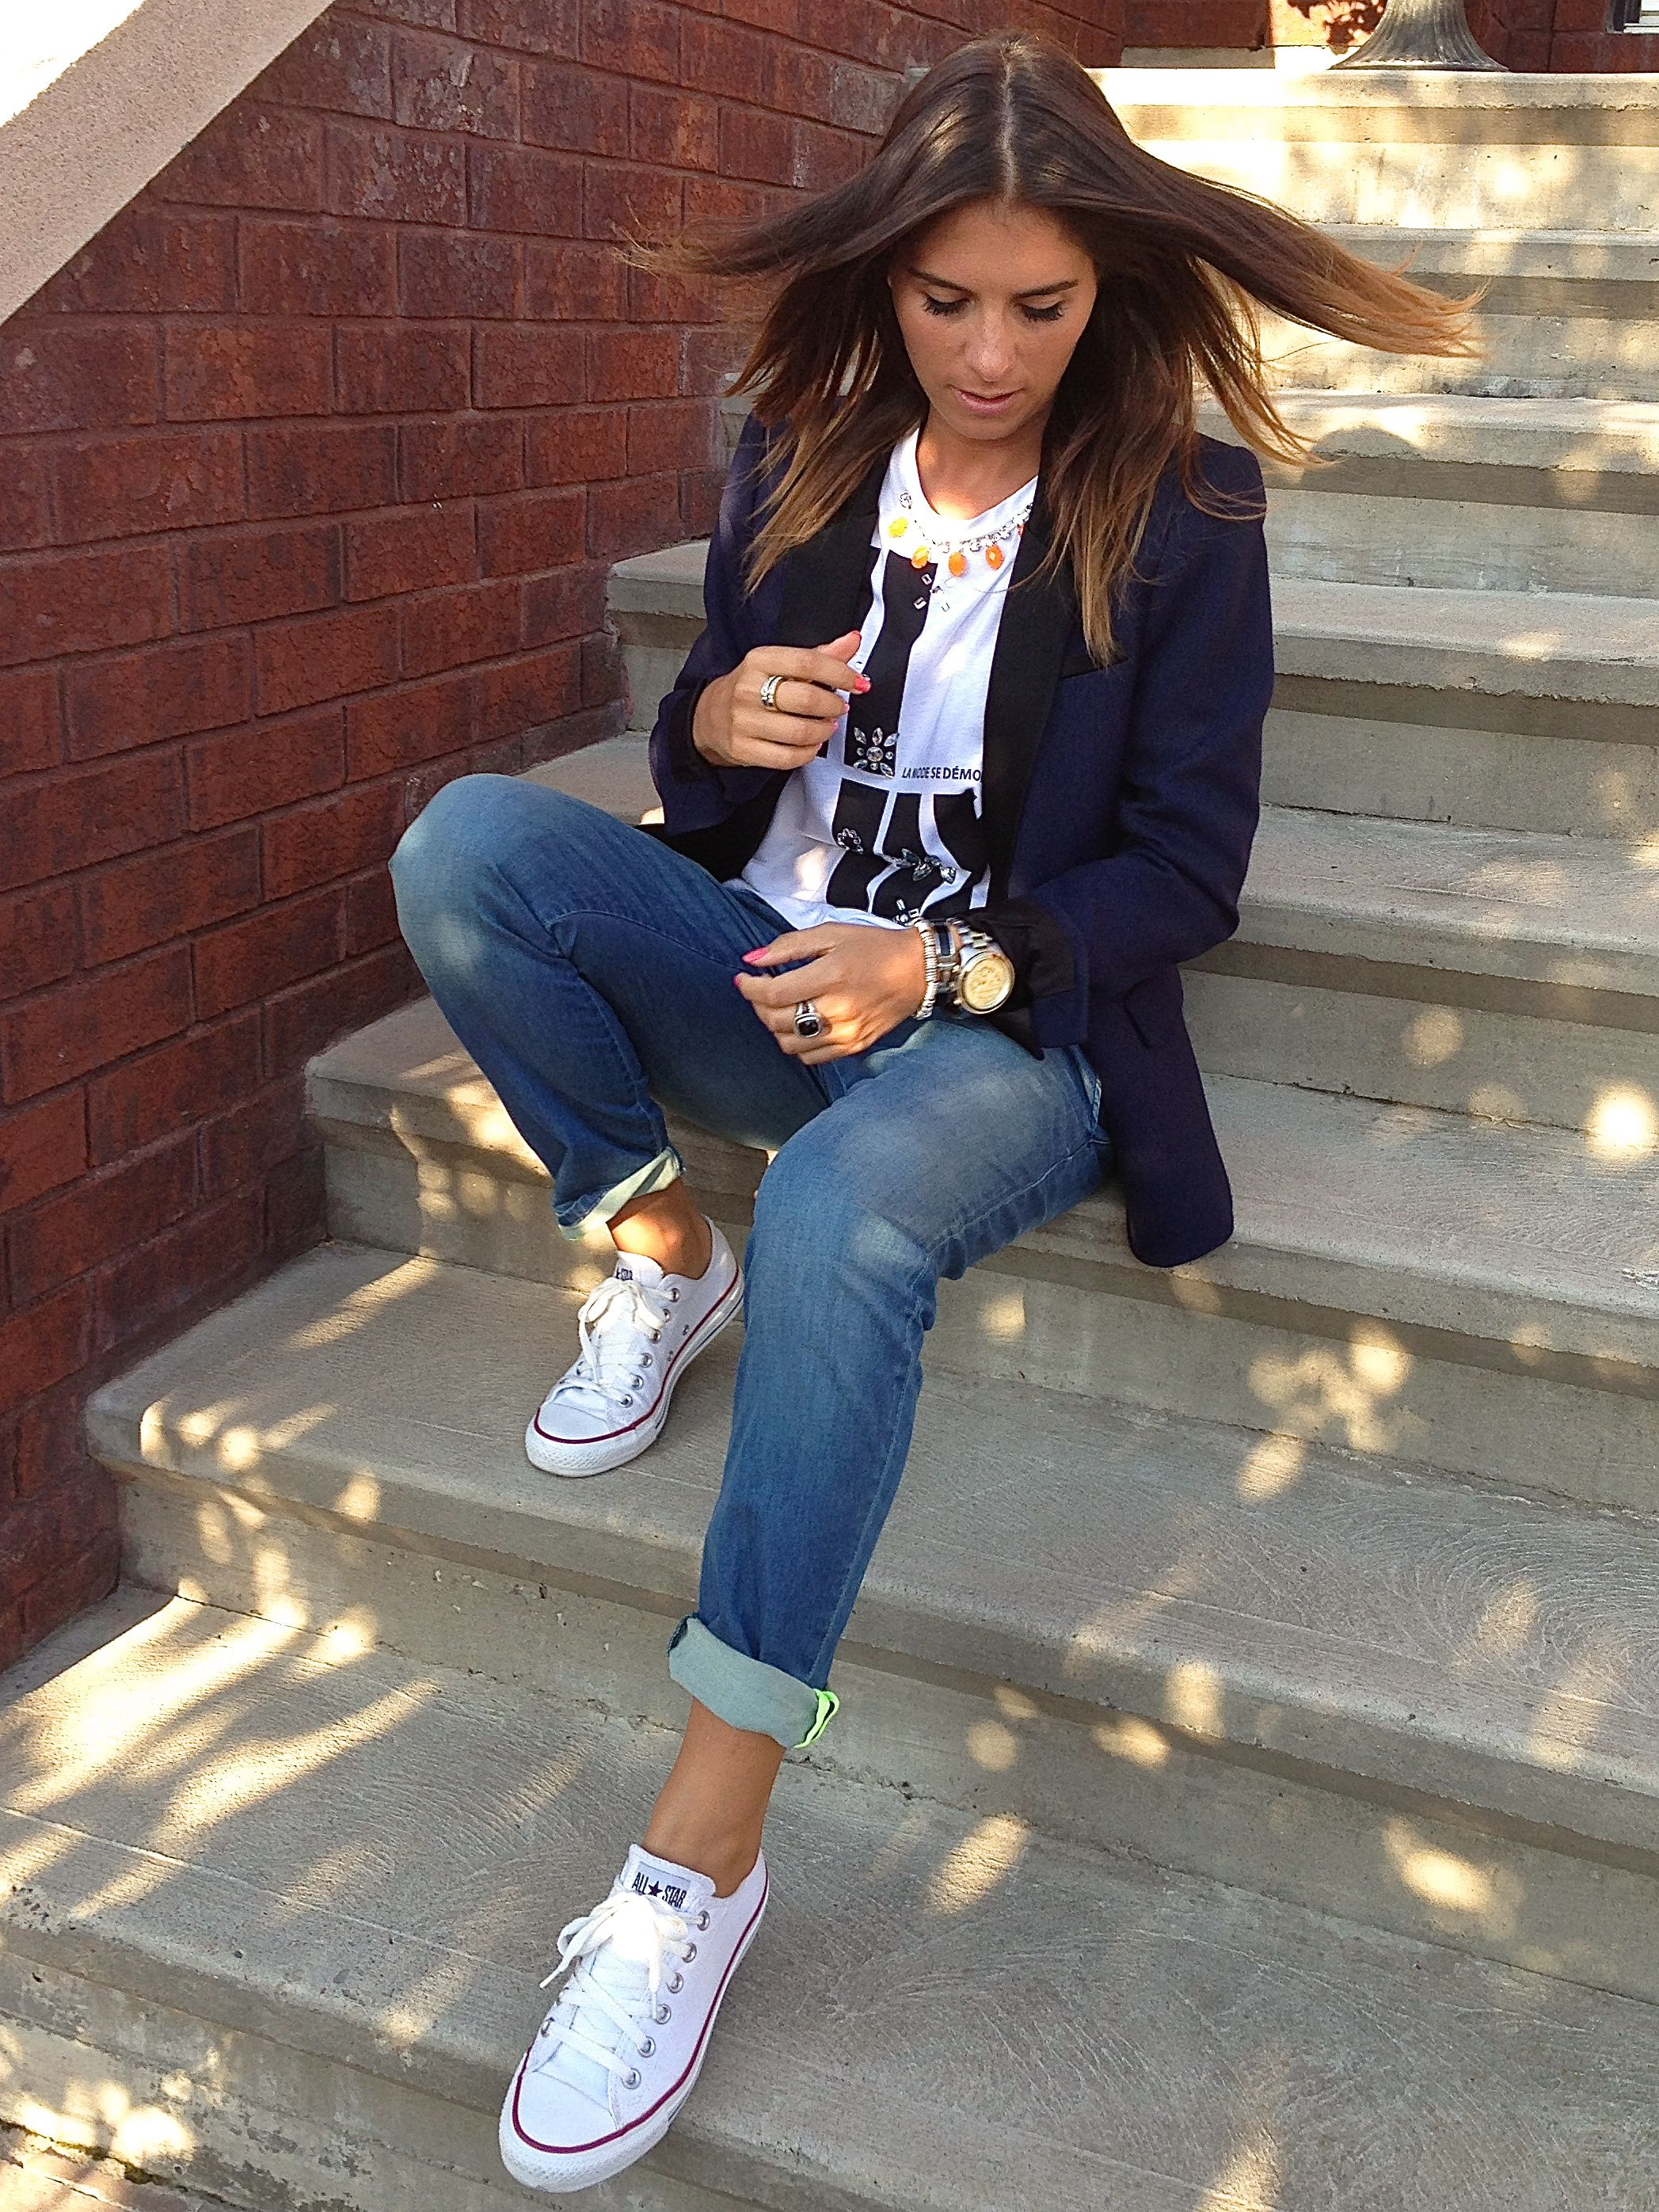 converse blanche ootd